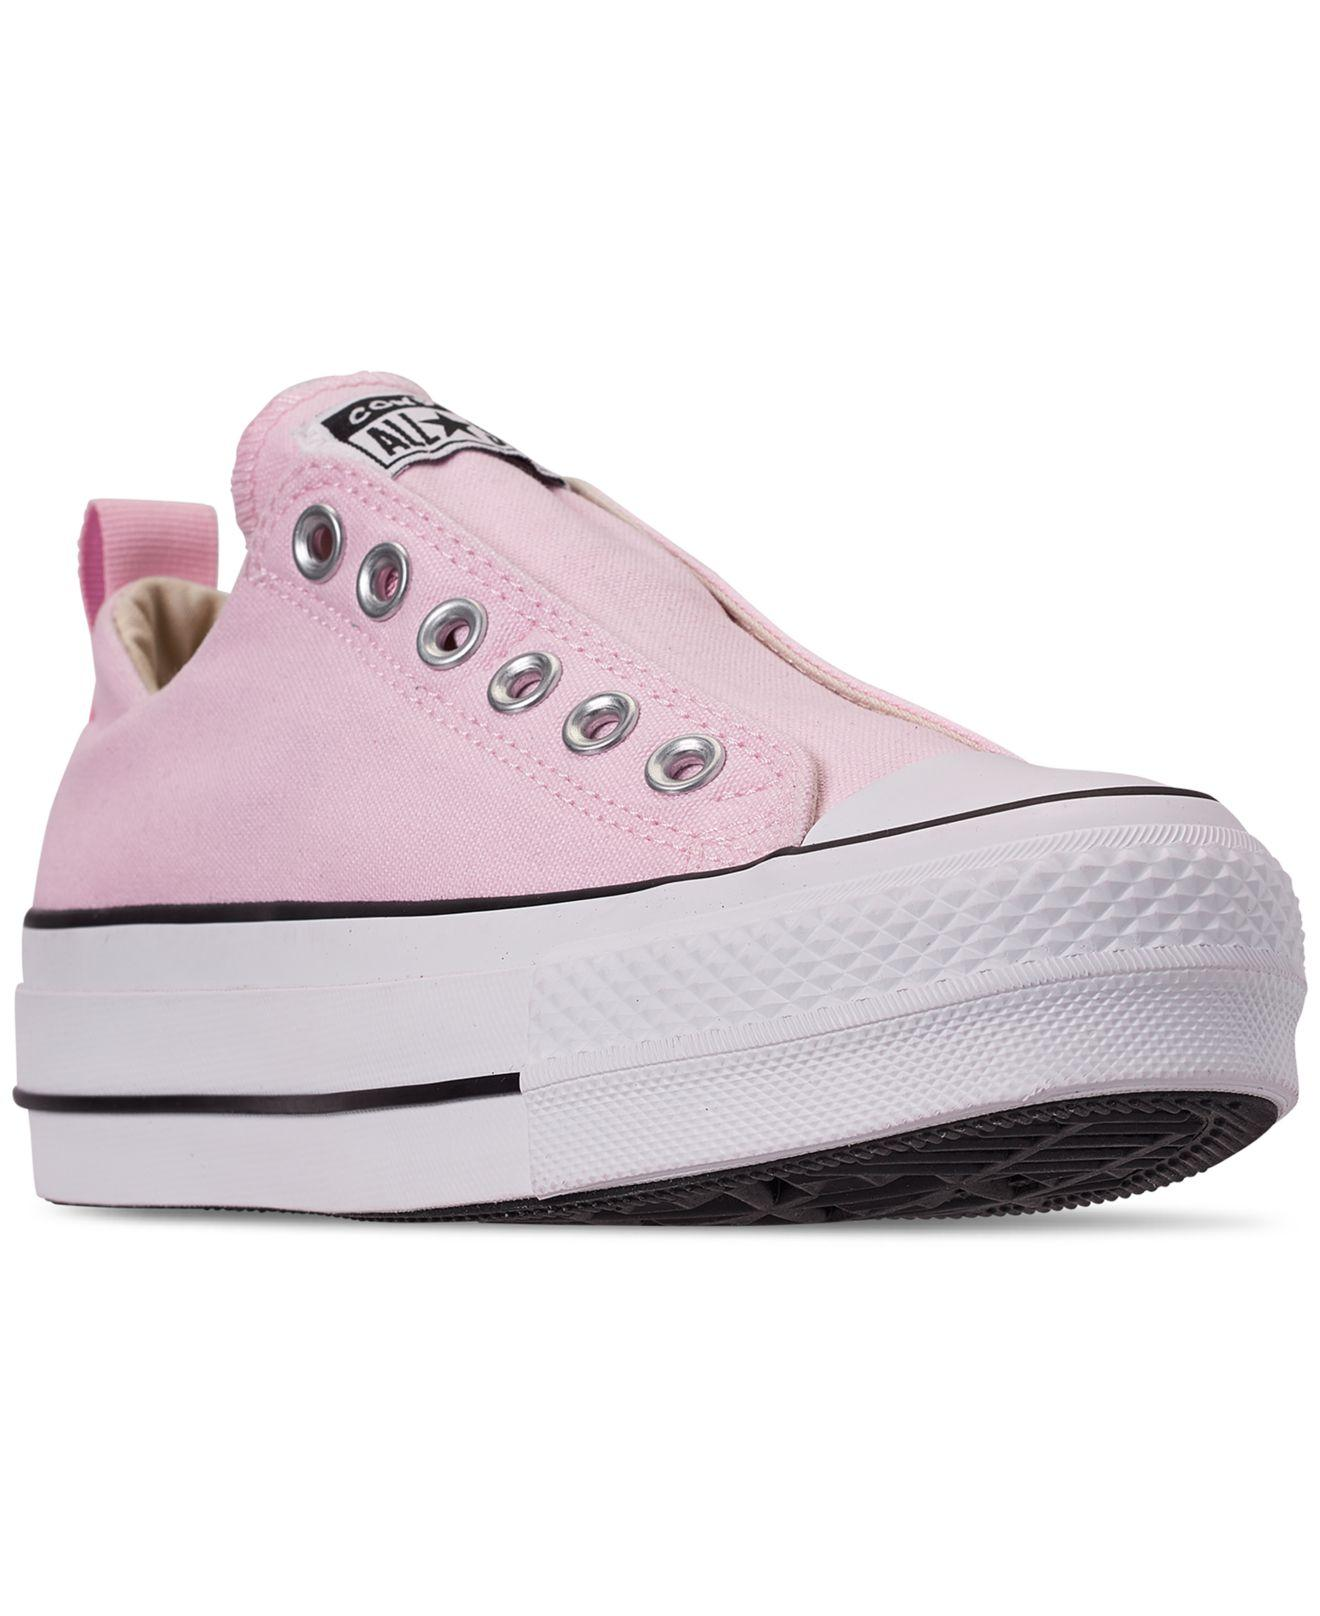 5105af8bec7098 Converse. Women s Pink Chuck Taylor All Star Low Top Fashion Casual Sneakers  From Finish Line